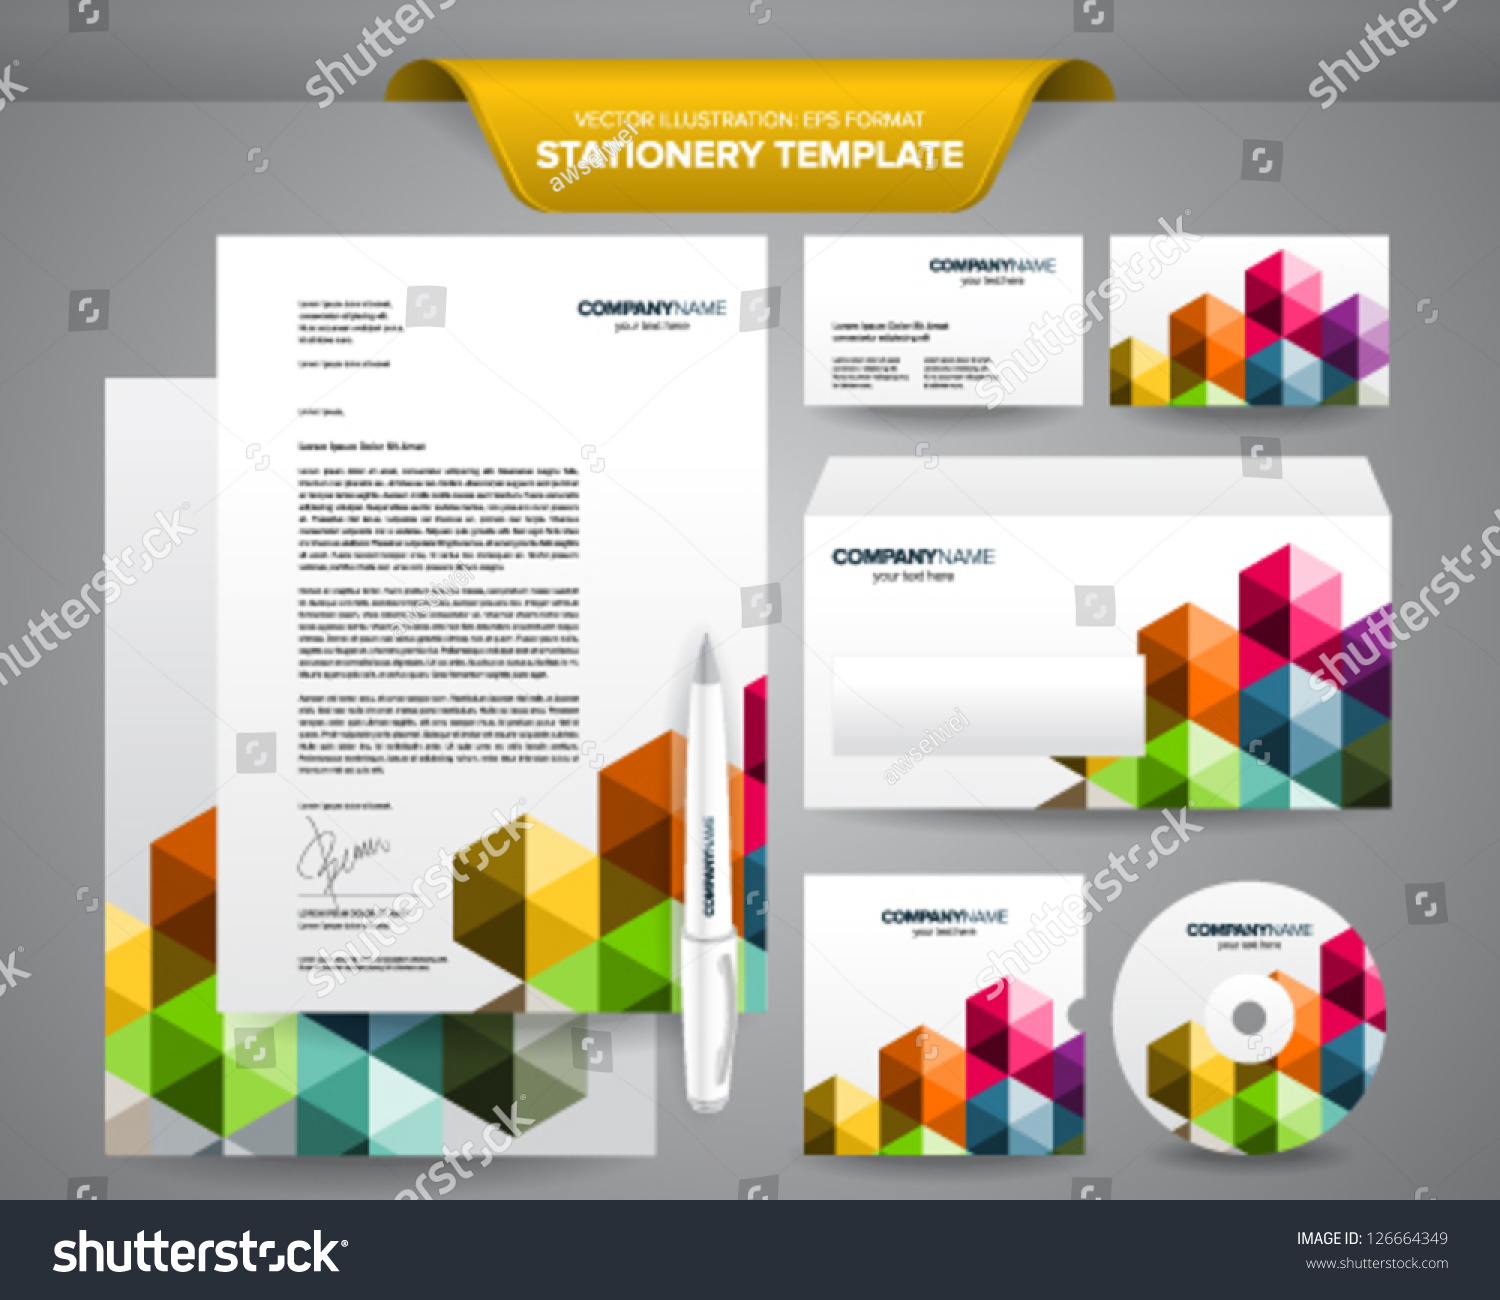 Complete set business stationery template such stock vector hd complete set of business stationery template such as letterhead envelope business card etc spiritdancerdesigns Image collections